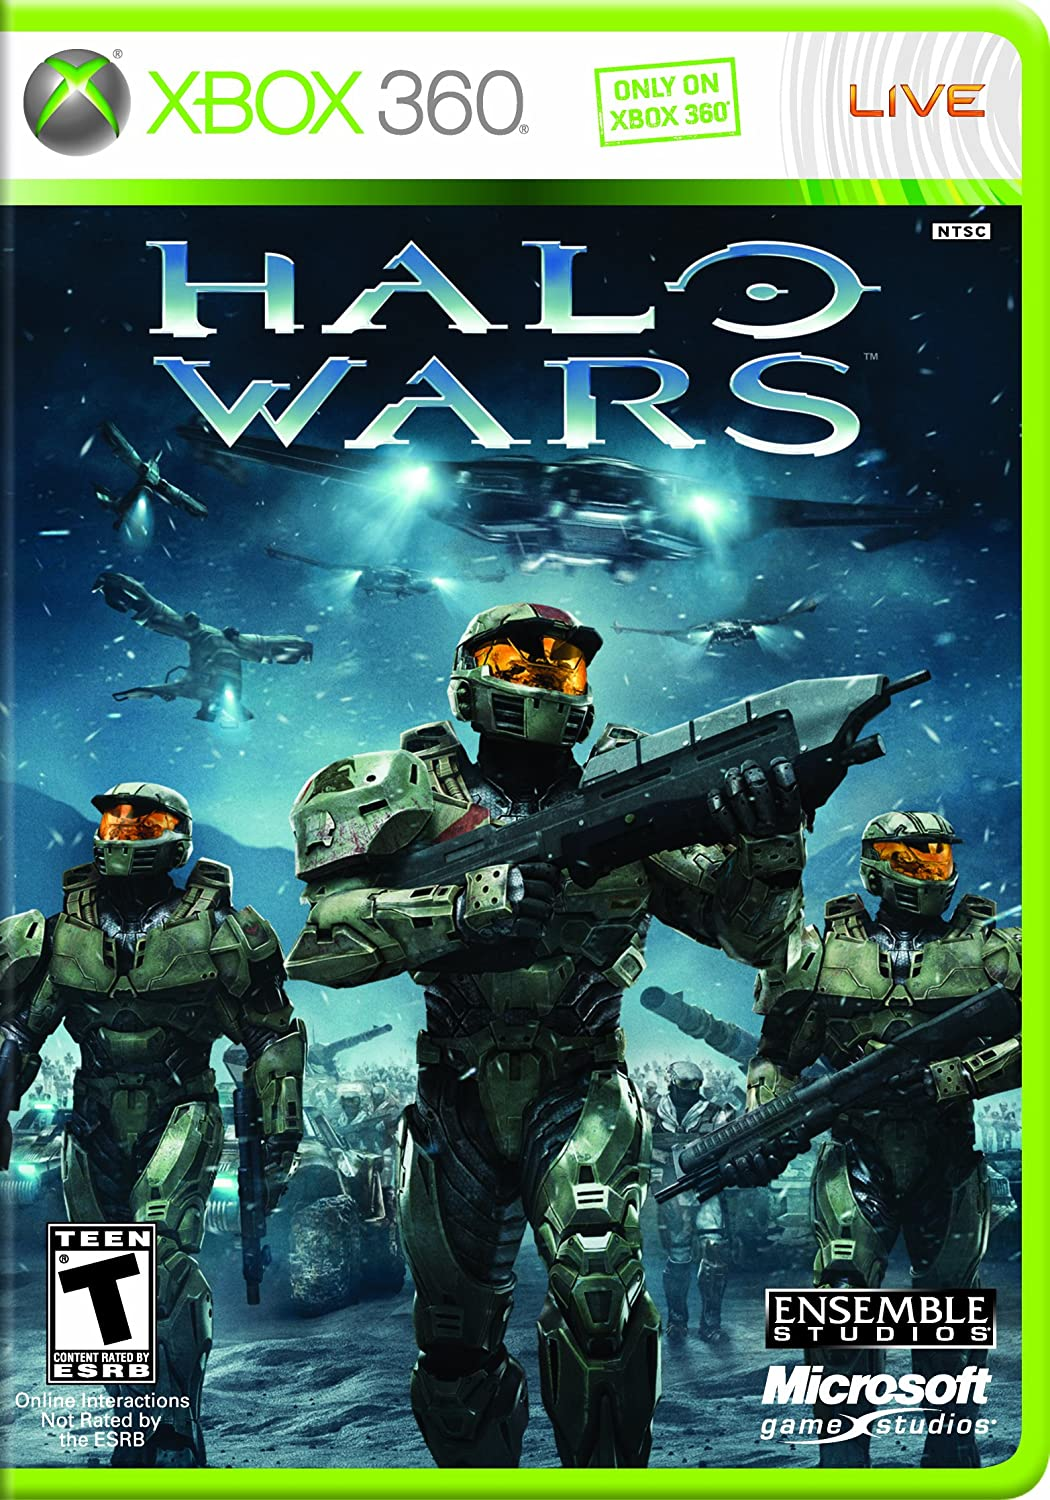 Don't miss the campaign Halo Popular brand Wars - 360 Xbox